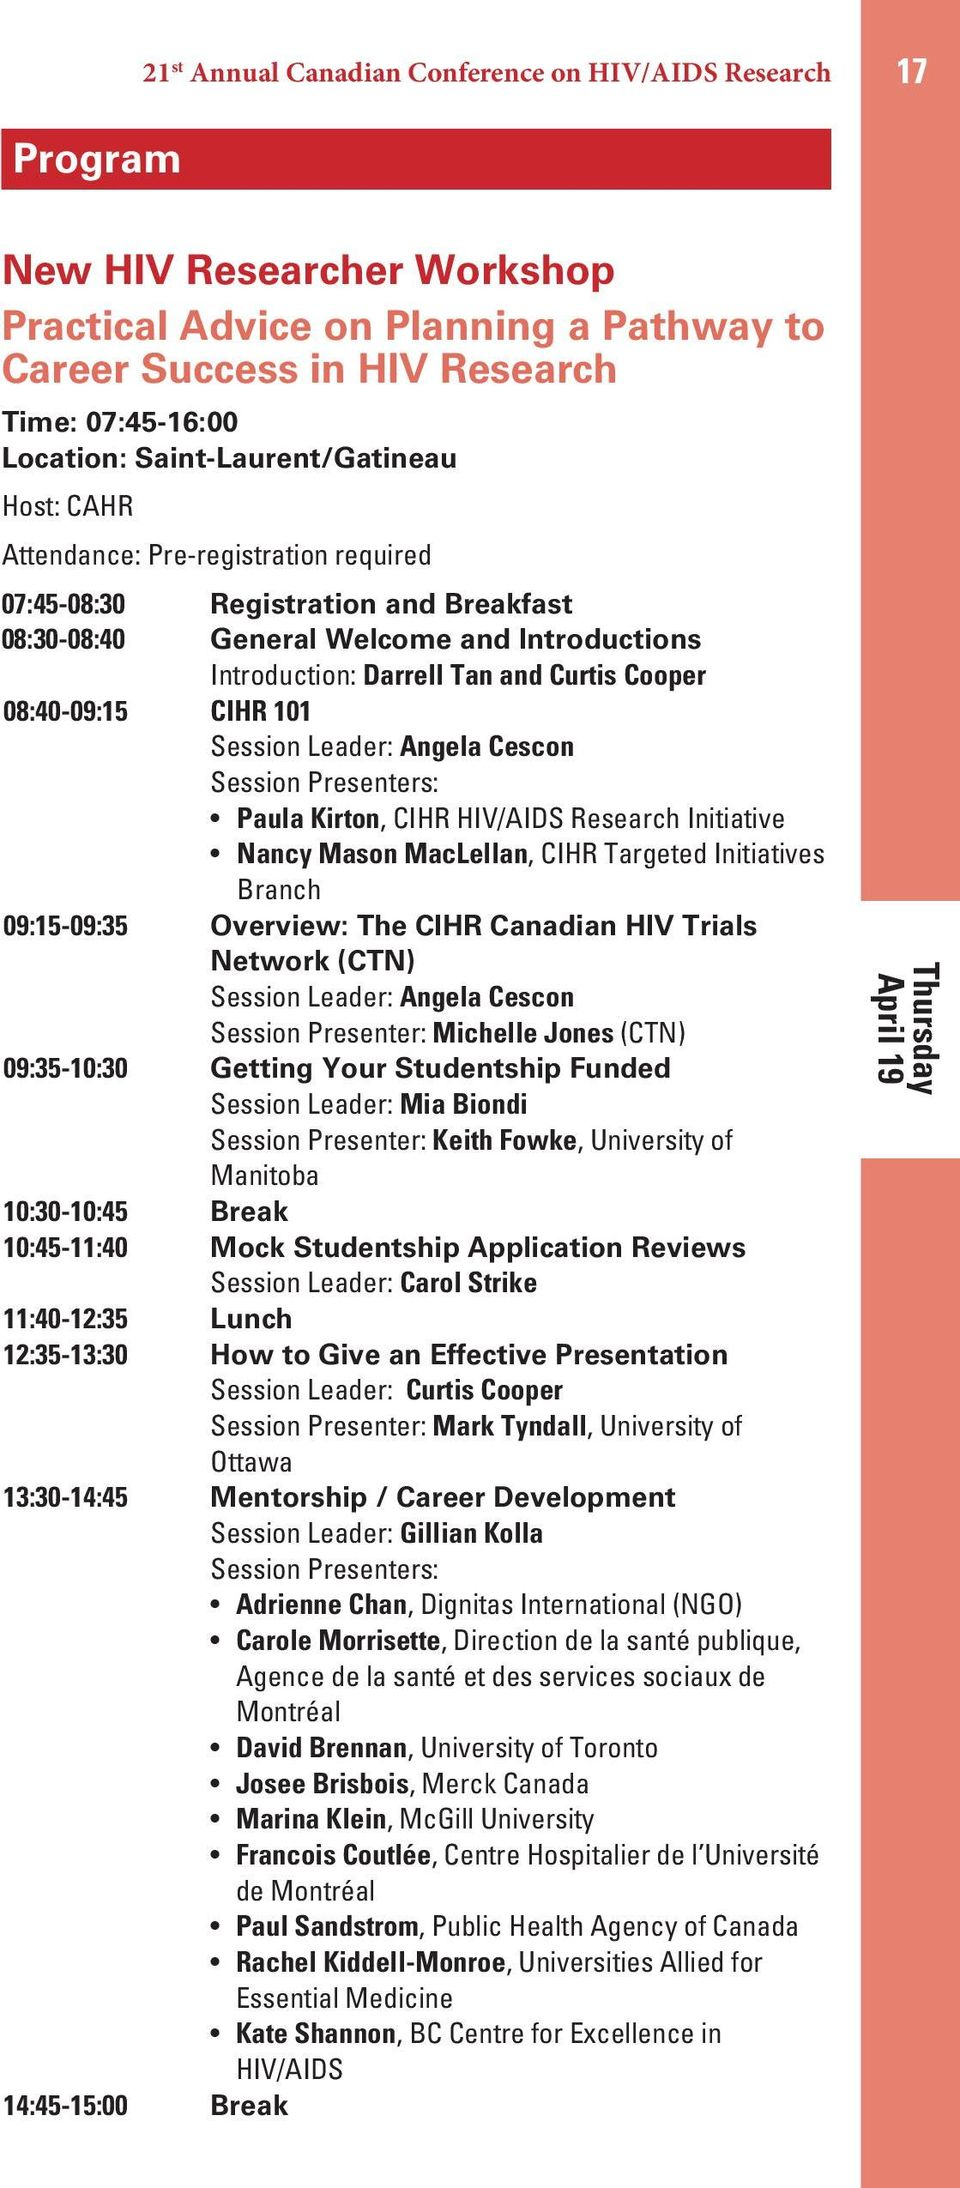 Cooper 08:40-09:15 CIHR 101 Session Leader: Angela Cescon Session Presenters: Paula Kirton, CIHR HIV/AIDS Research Initiative Nancy Mason MacLellan, CIHR Targeted Initiatives Branch 09:15-09:35